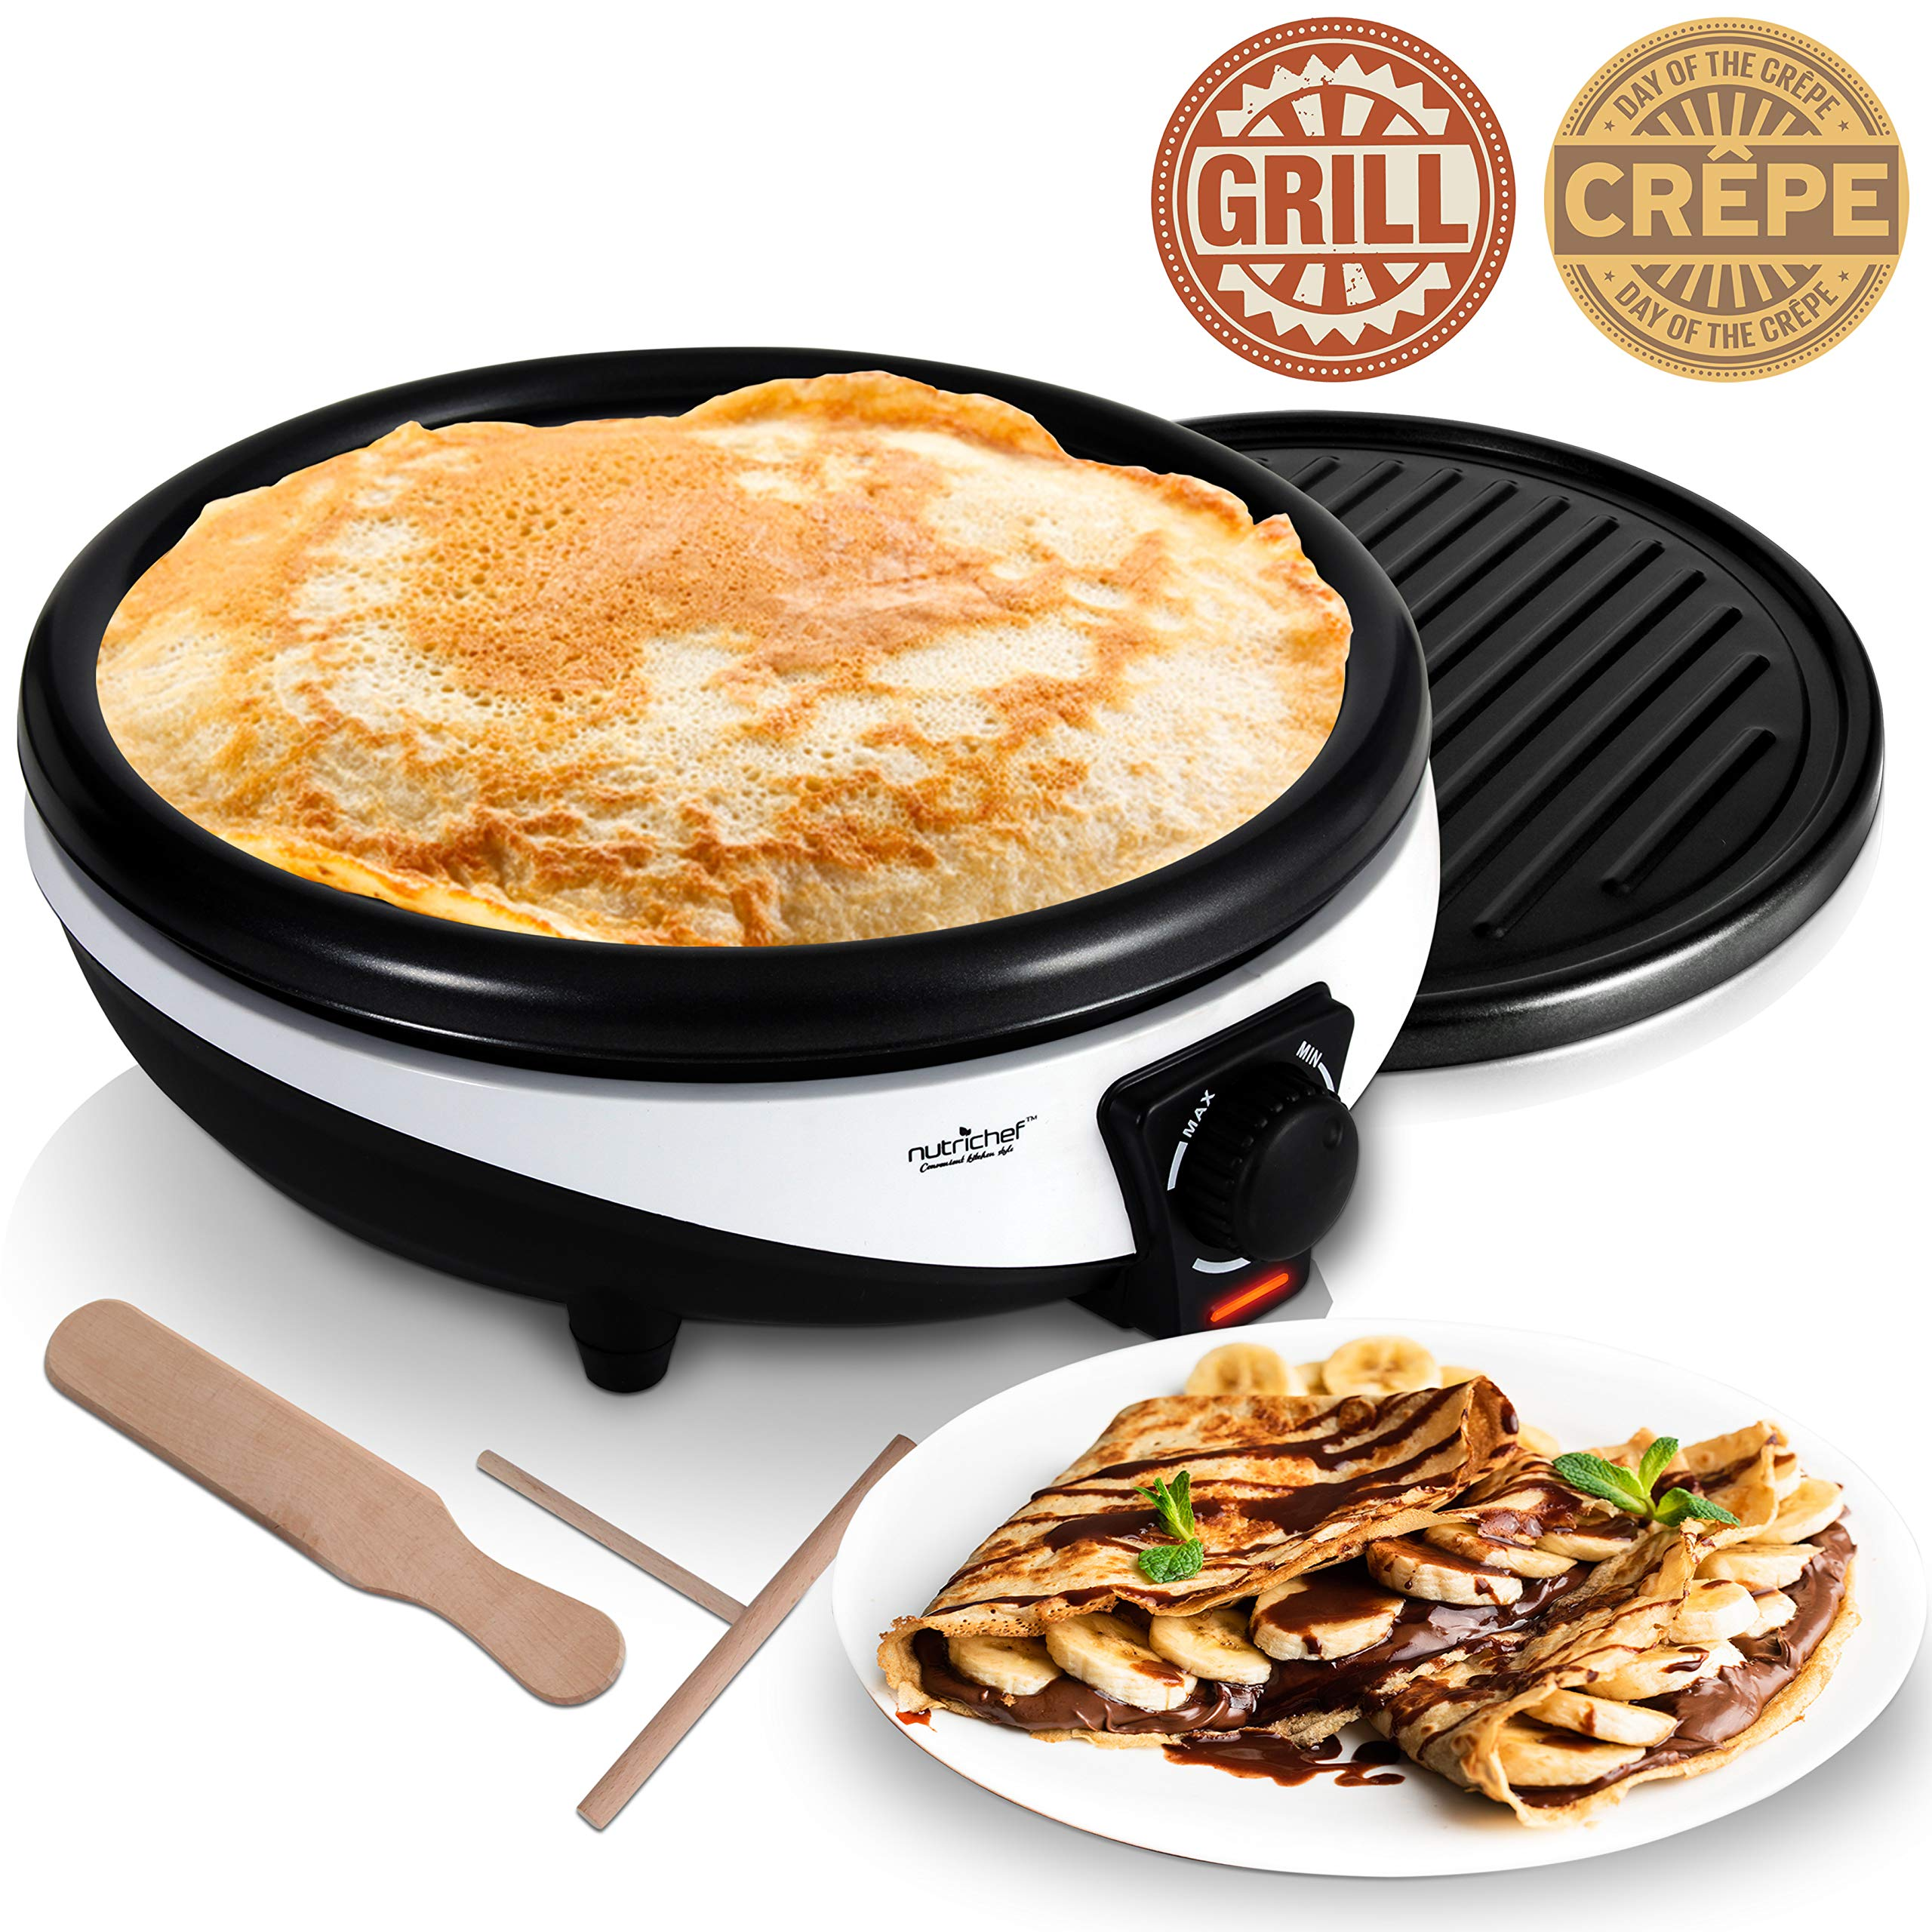 NutriChef Electric Griddle & Crepe Maker - Nonstick 11.8 Inch Hot Plate Cooktop, Adjustable Temperature Control, Batter Spreader & Spatula, Used Also For Pancakes, Blintzes & Eggs PKCYM15 by Nutrichef